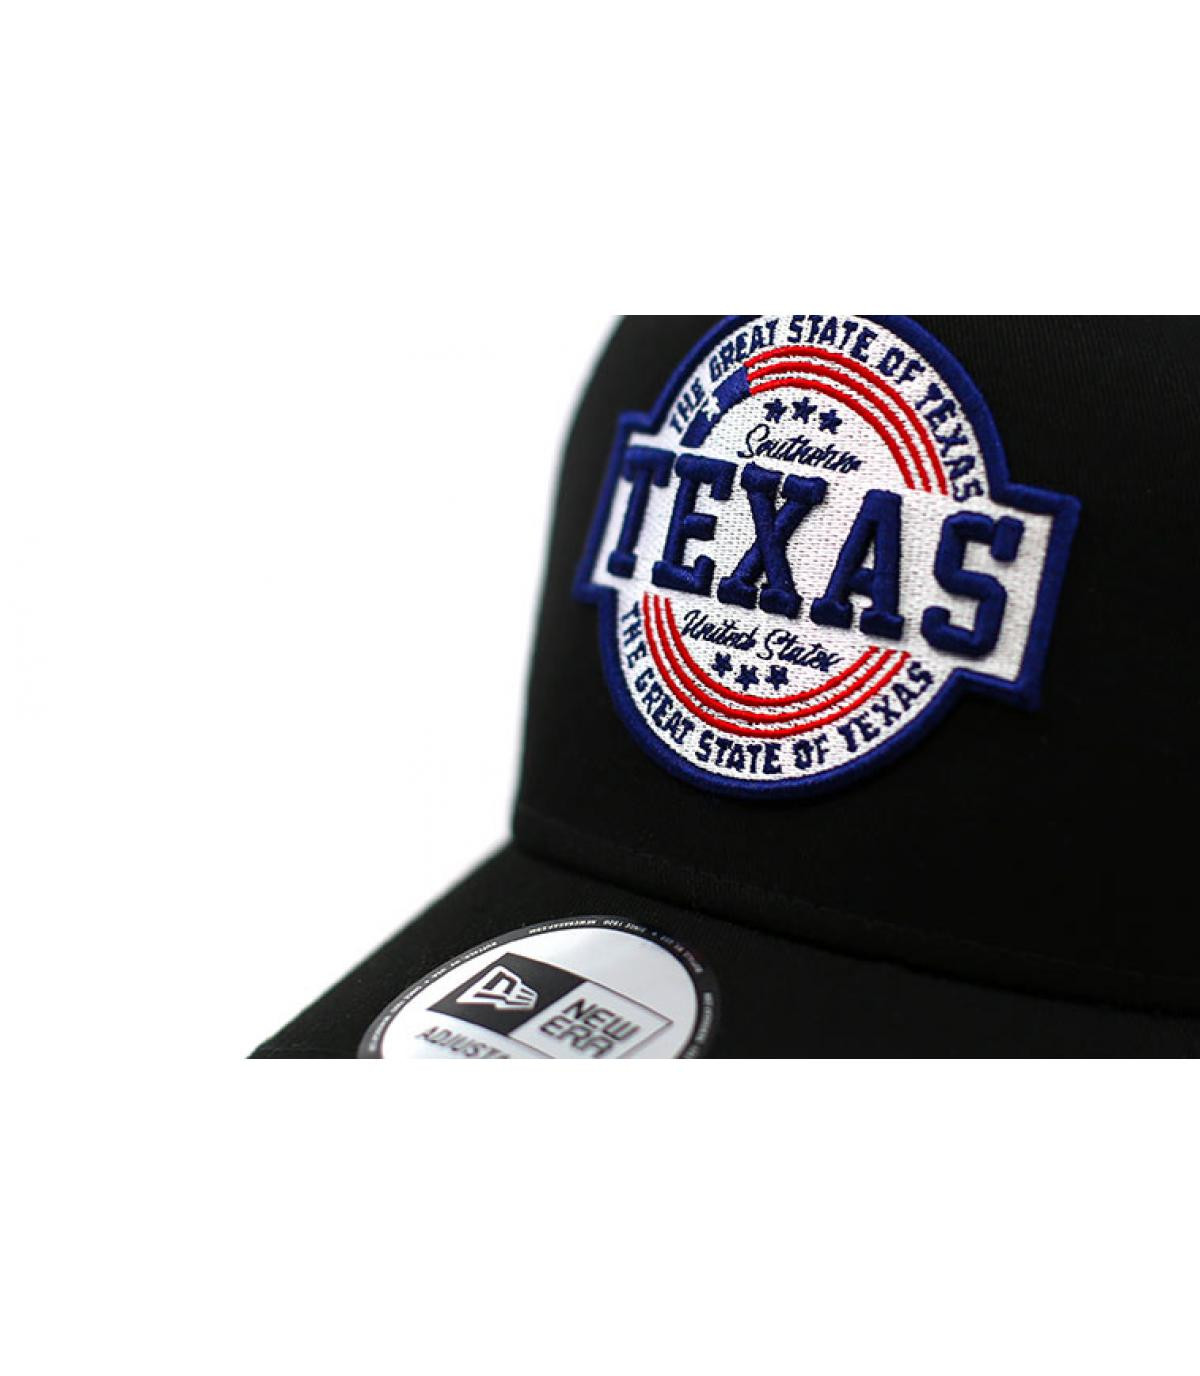 Details Trucker USA Patch Texas black - afbeeling 3